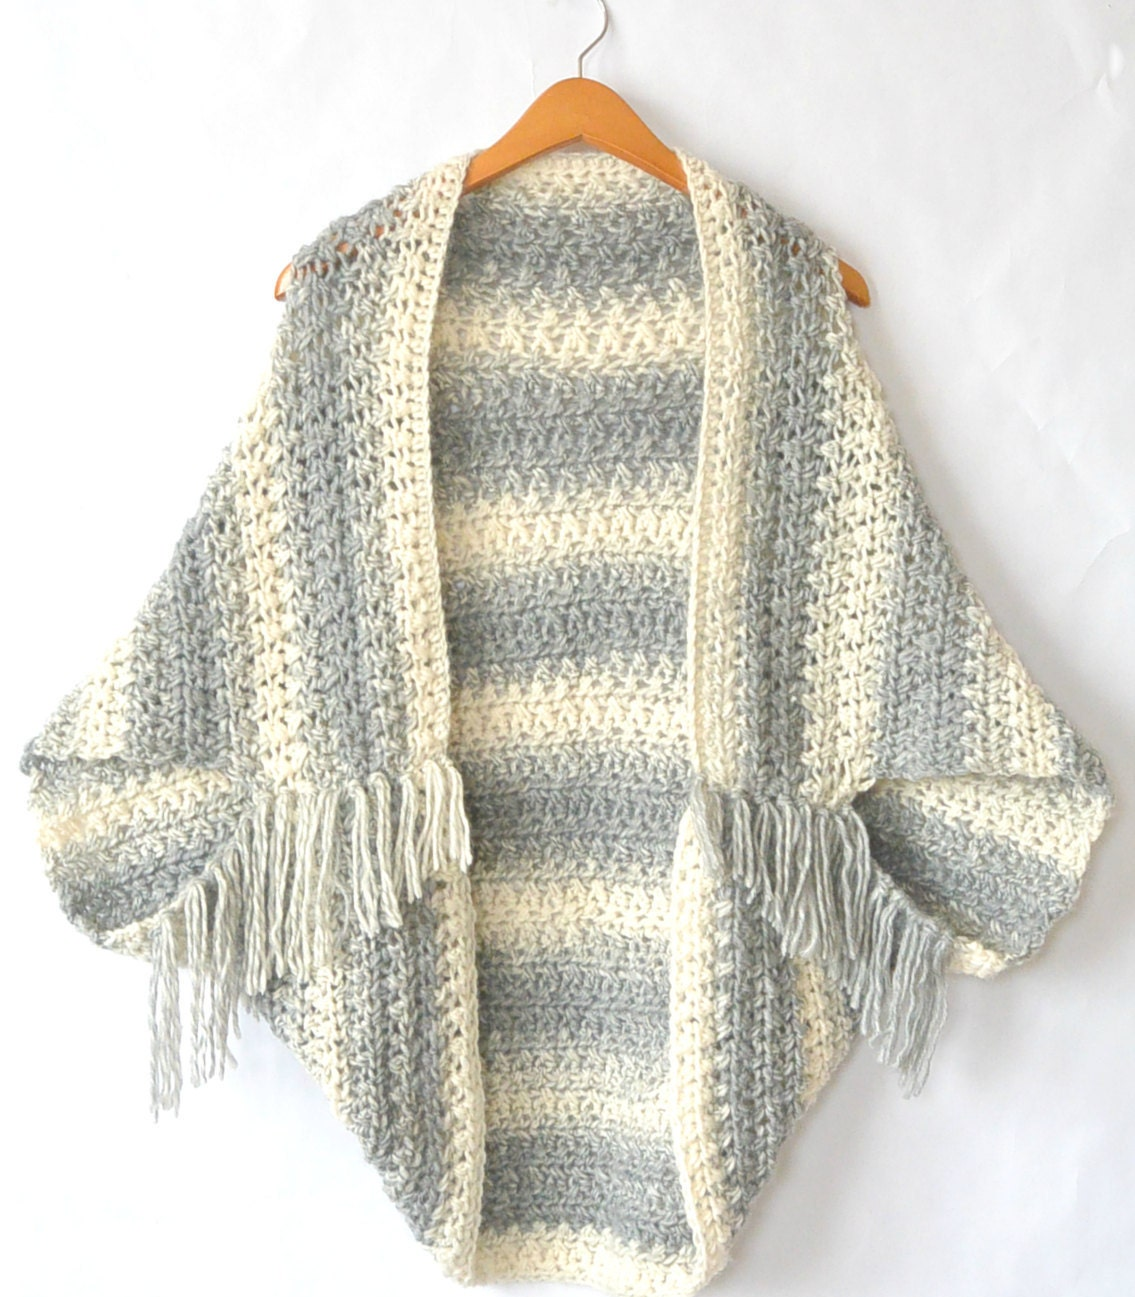 Easy Crocheted Sweater Cacoon Pattern Crocheted Shrug